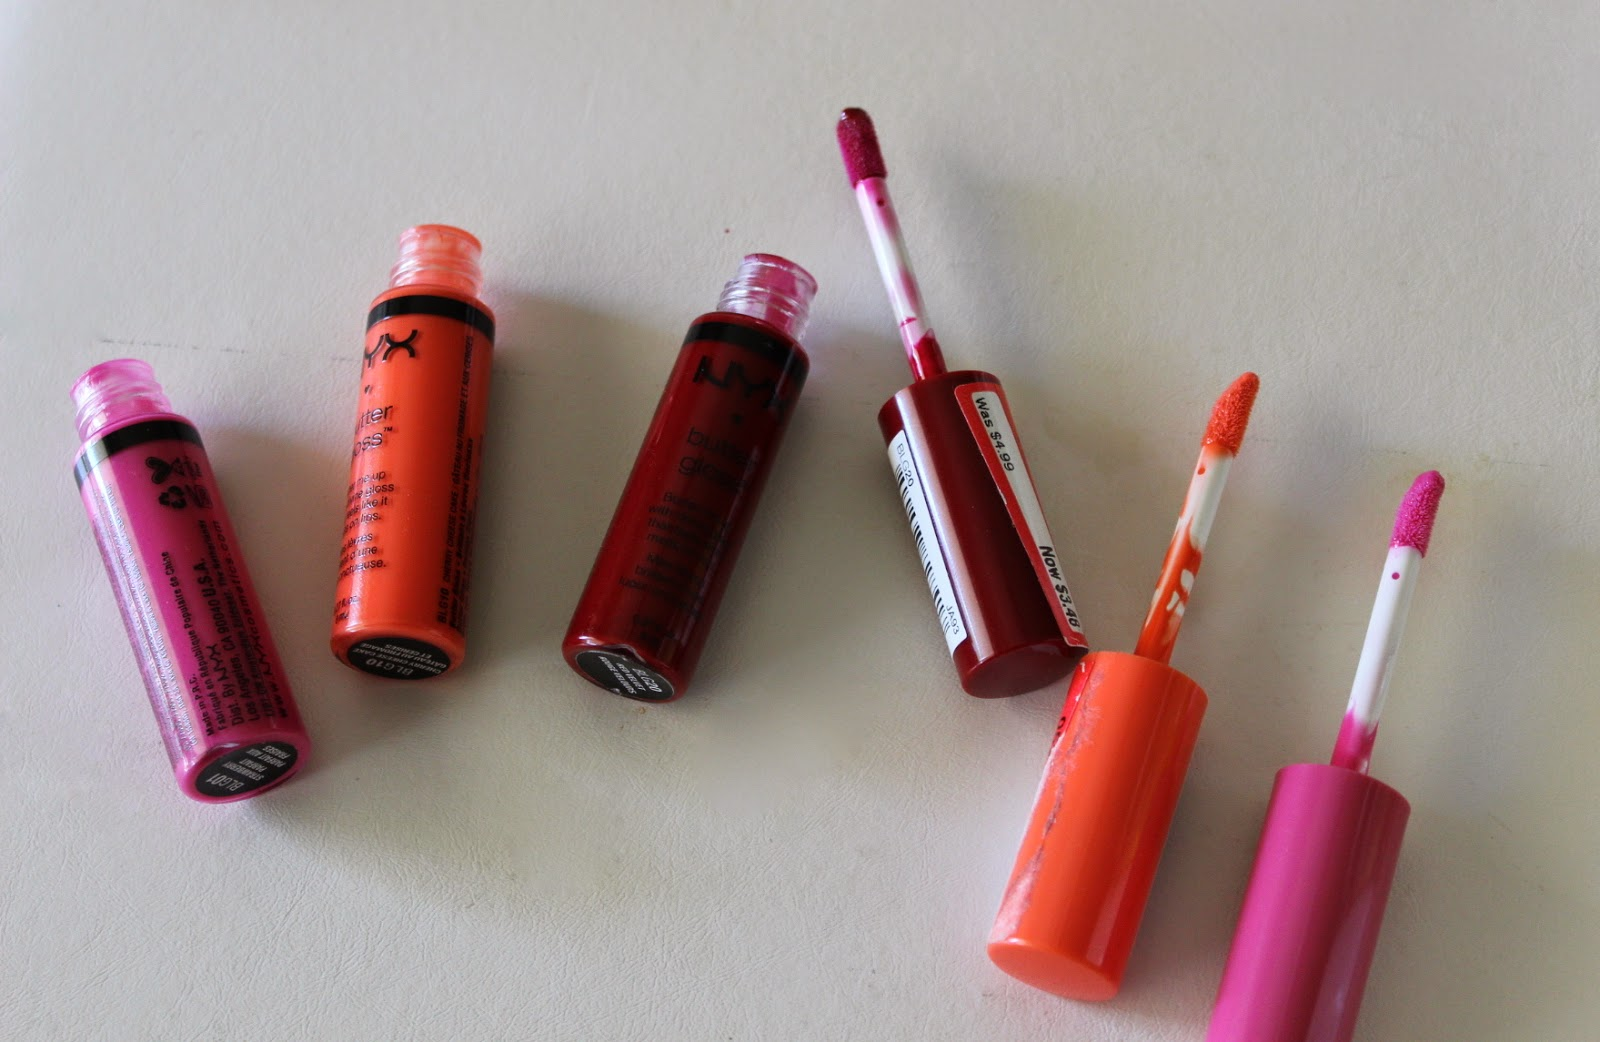 nyx lip butterglosses lippies